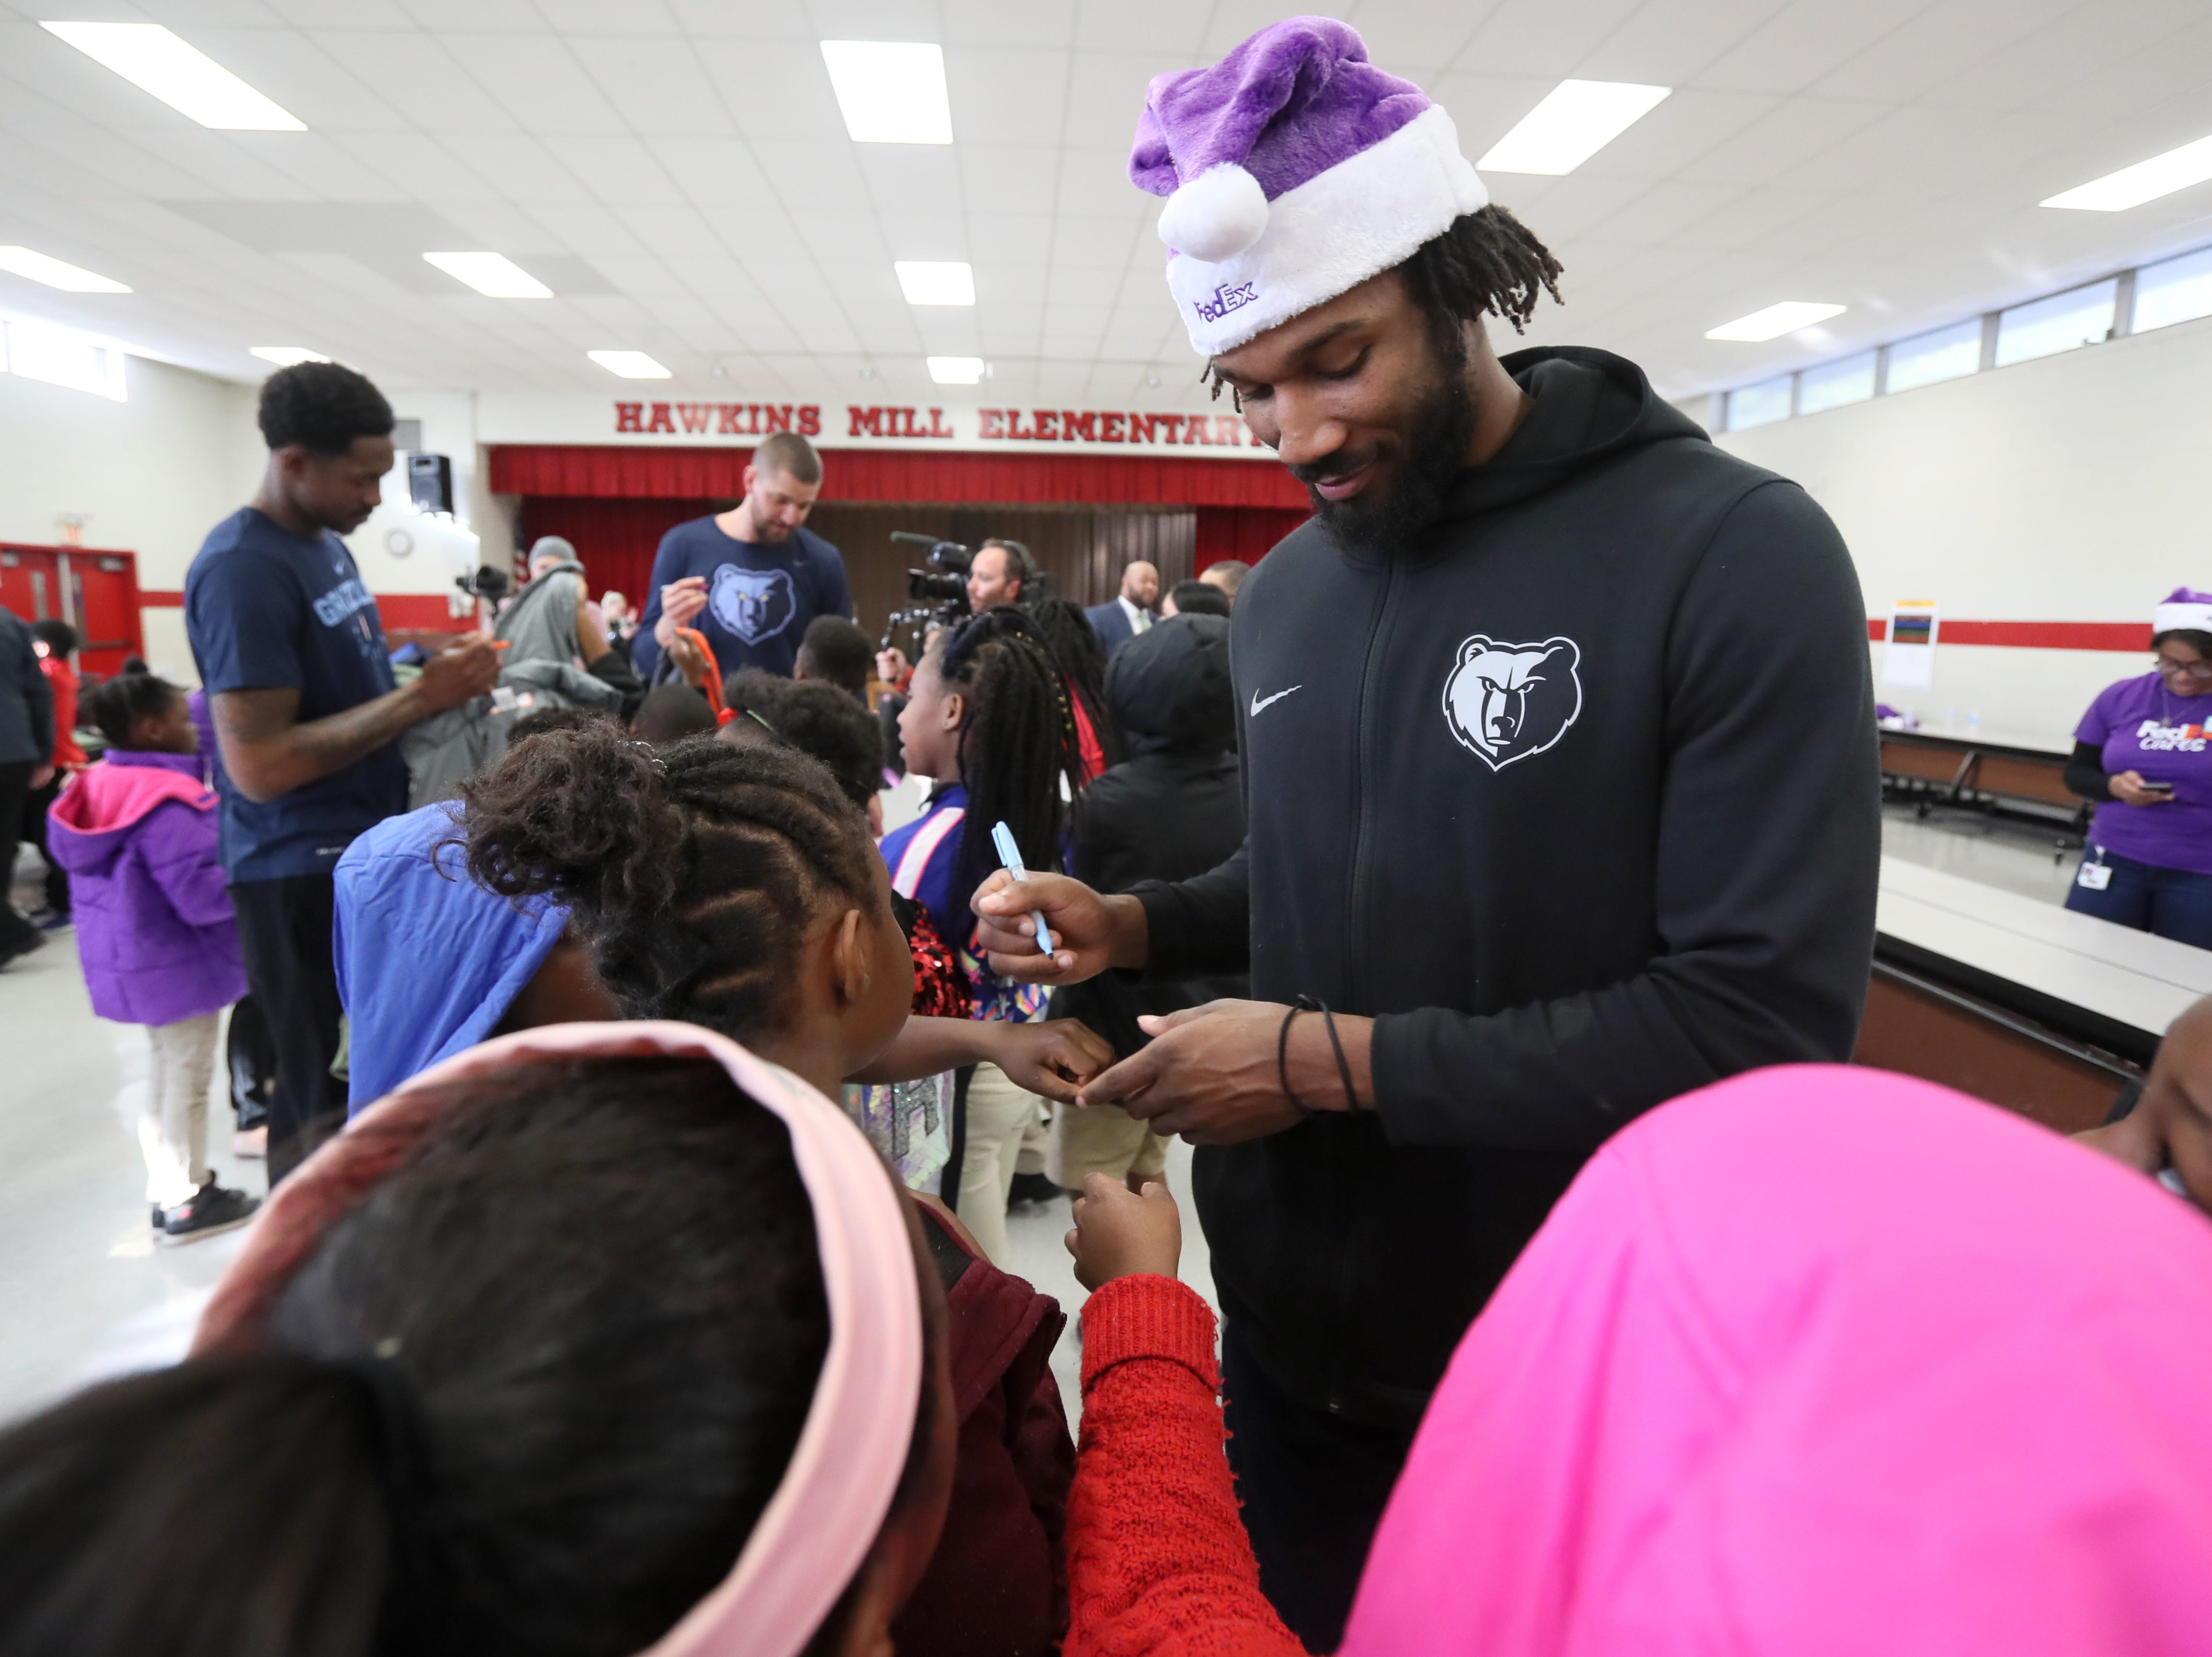 Memphis Grizzlies guard Wayne Selden signs autographs as his team joins FedEx and Operation Warm to help surprise children with new coats at Hawkins Mill Elementary School on Thursday, Nov. 8, 2018.